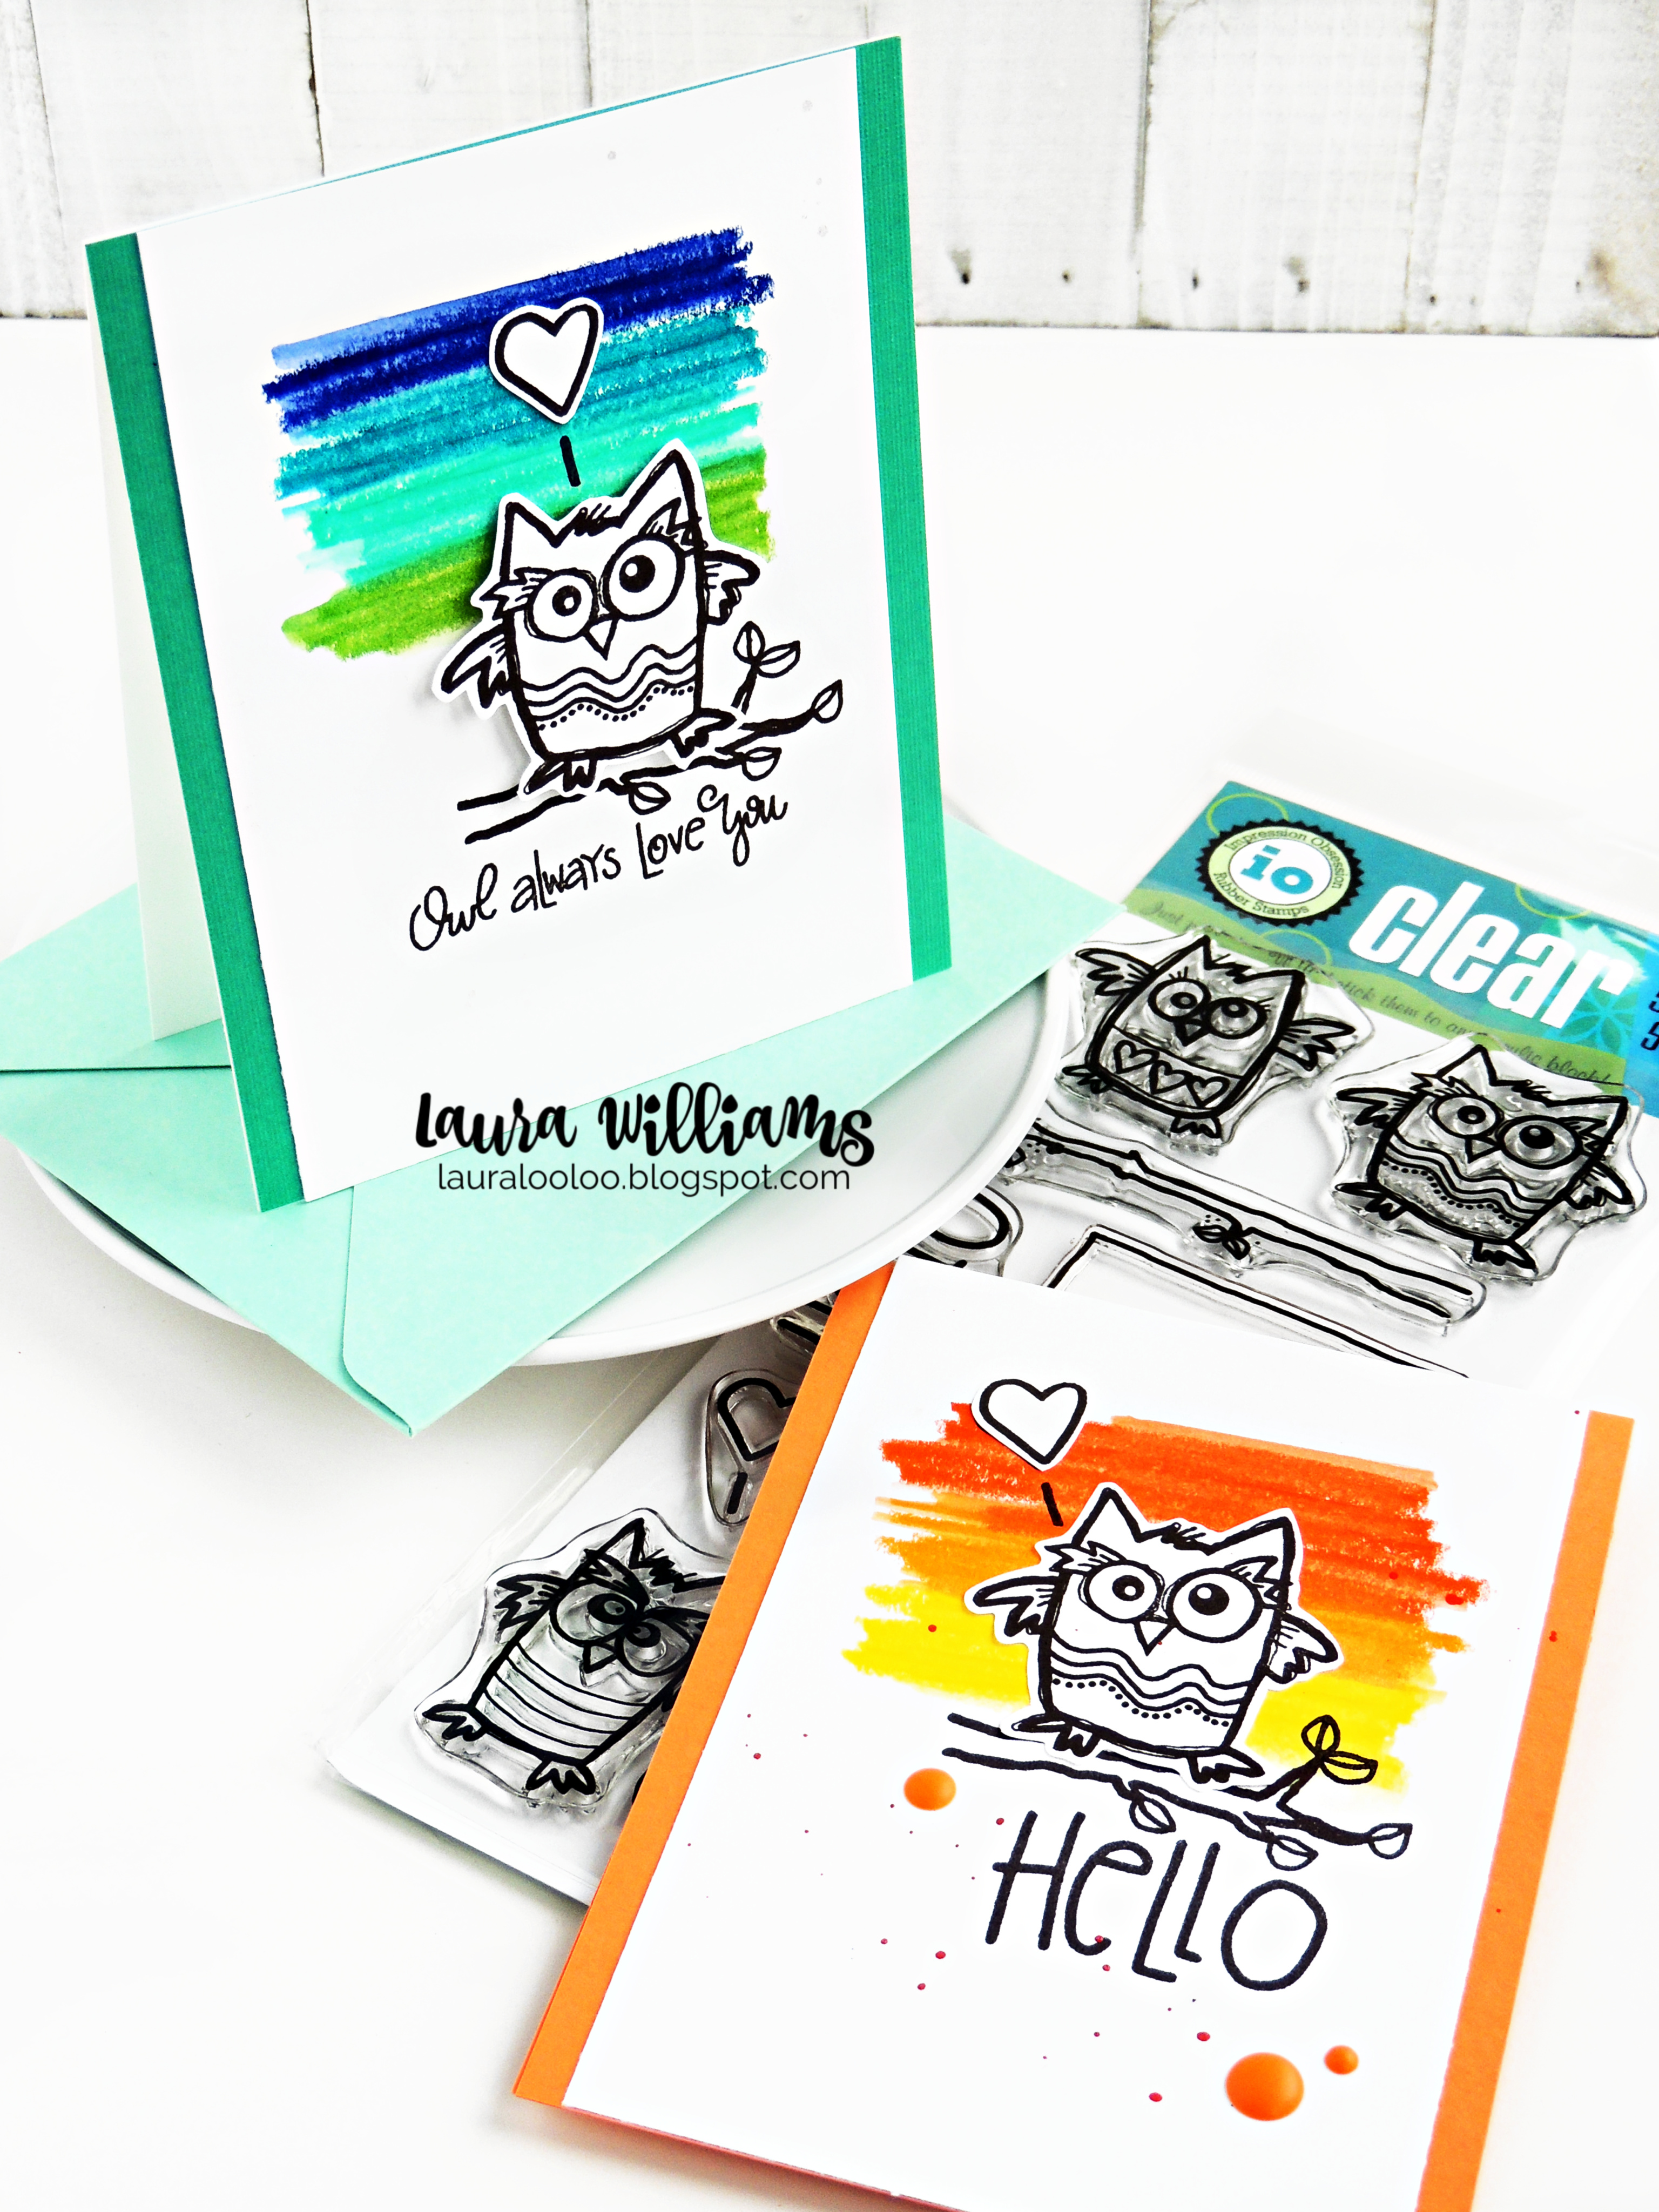 Clean and simple owl cards with black ink, but bright scribbled colors - fun technique for Jane Davenport Colorsticks, Gelatos, or even crayons! #cardmaking #stamping #iostamps #lauralooloo